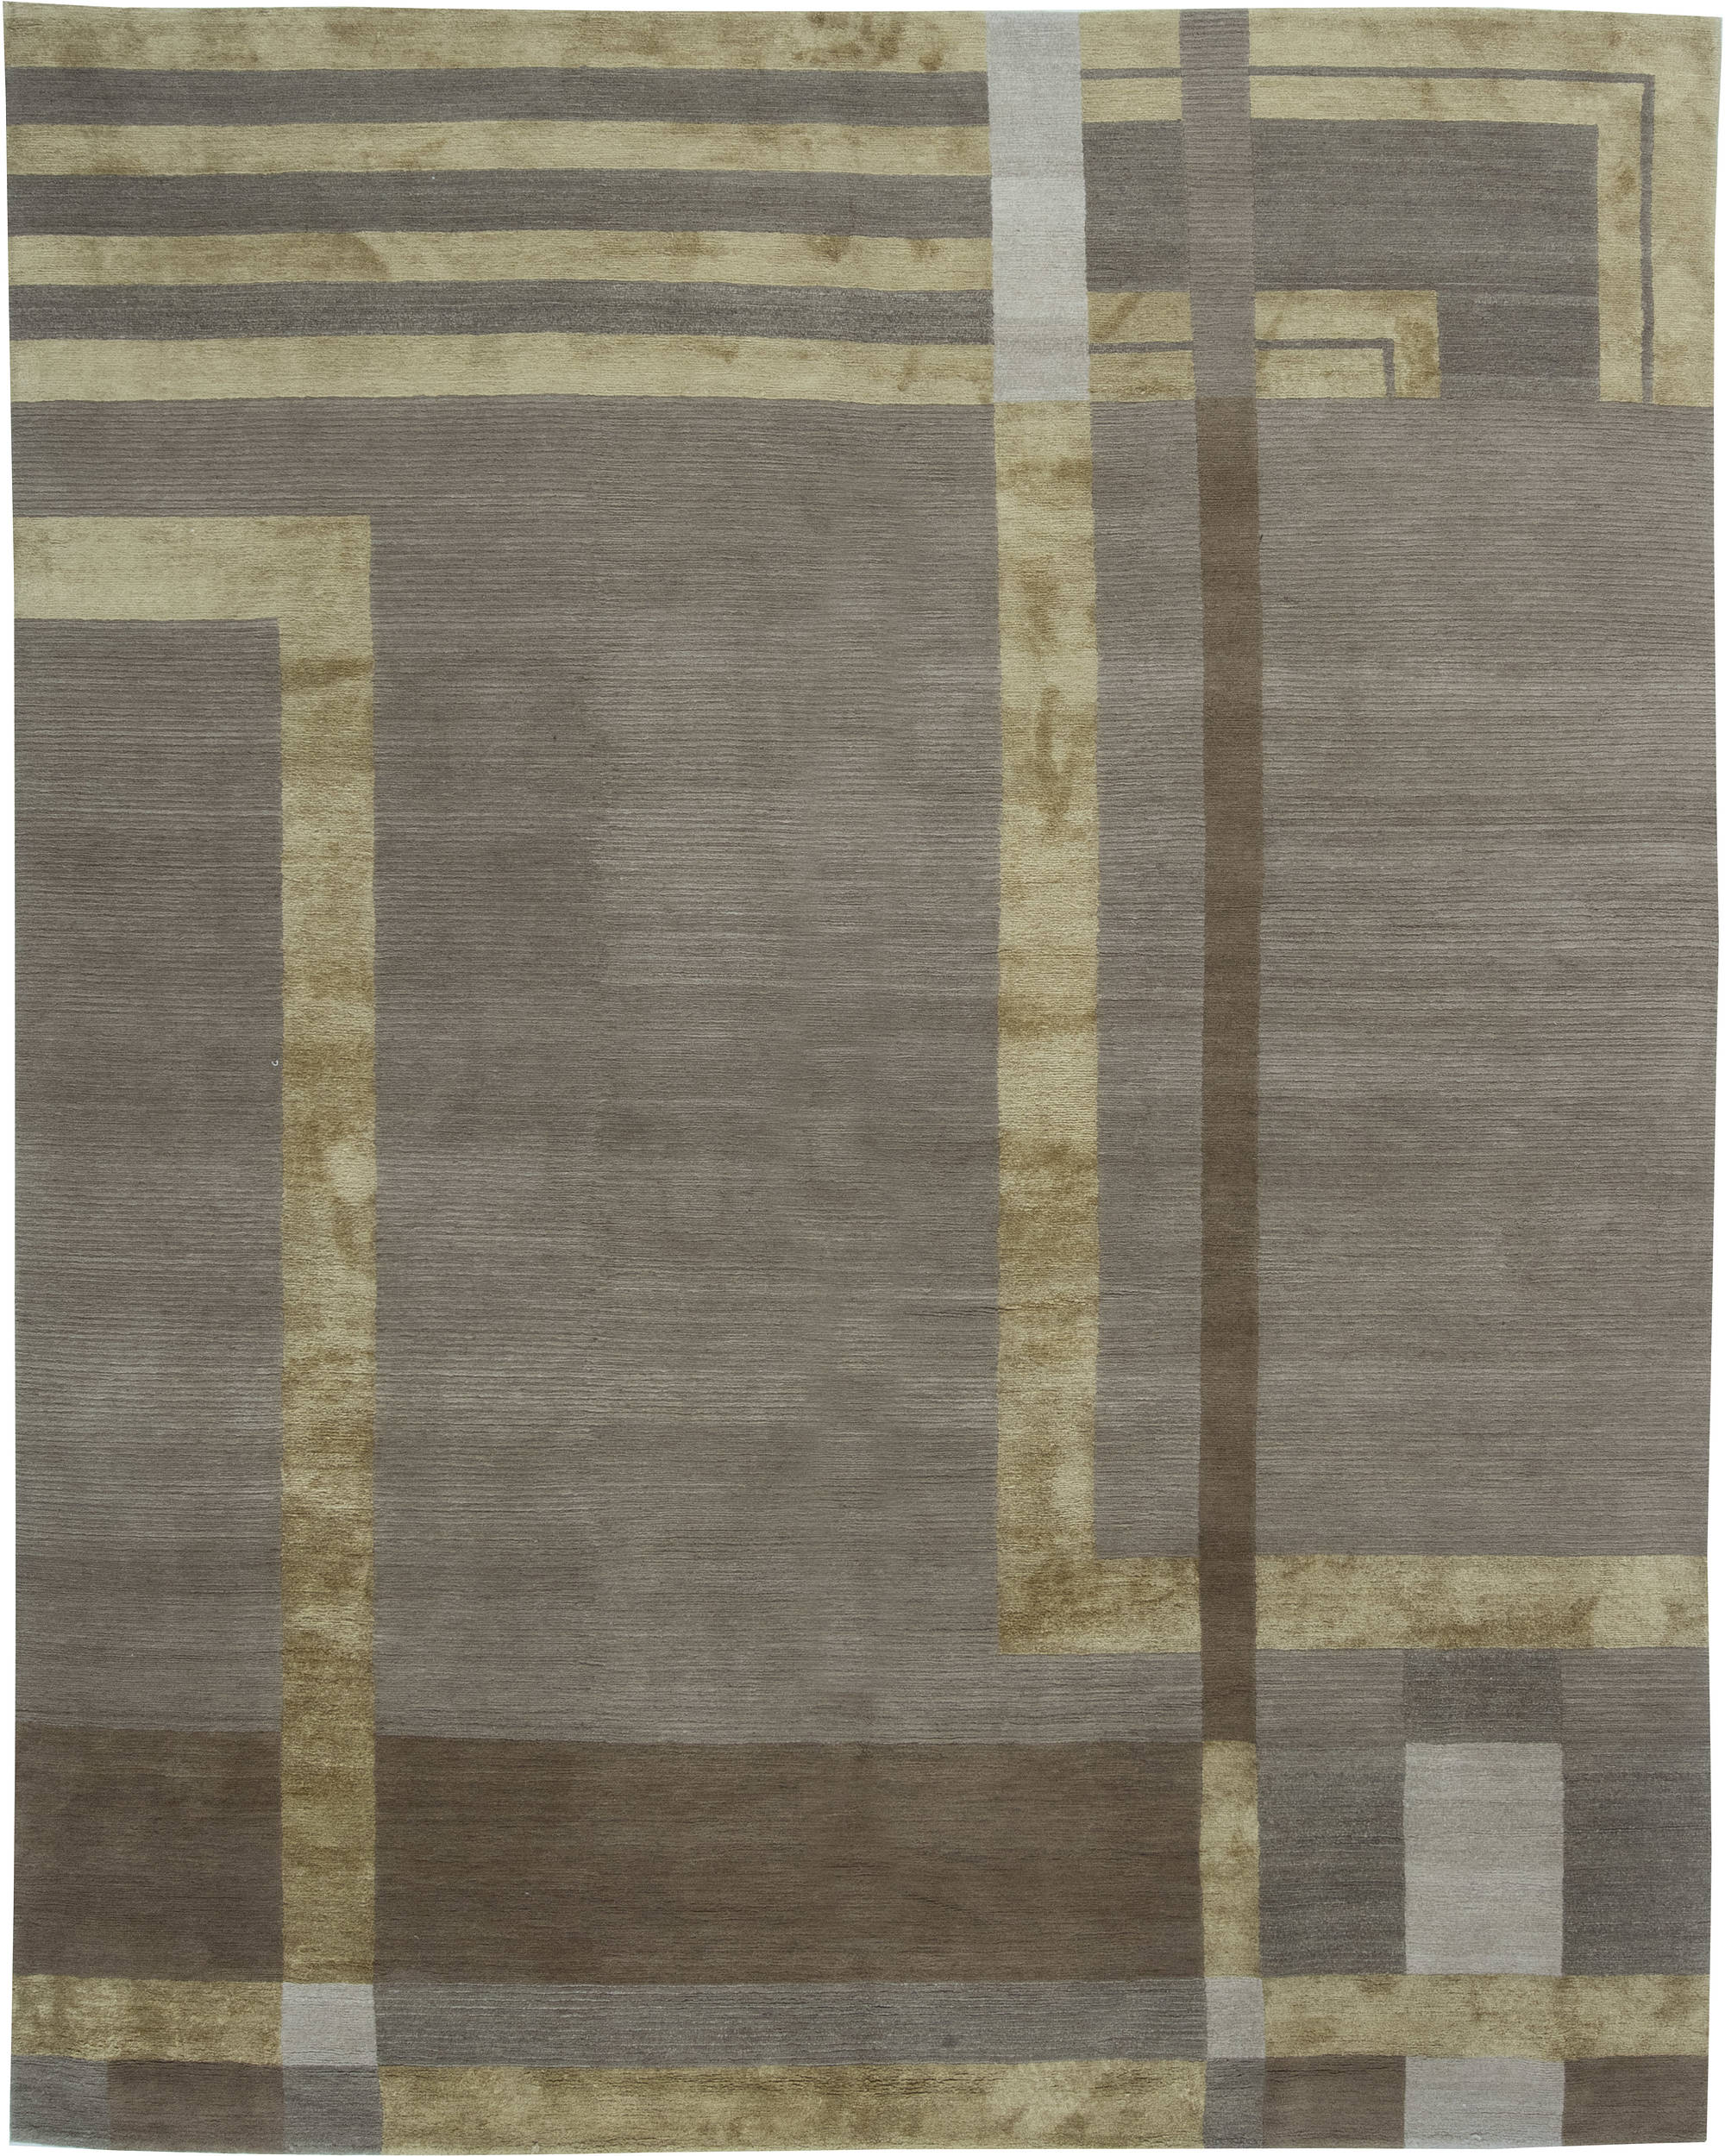 Contemporary Nepalese Rug N11506 By Doris Leslie Blau